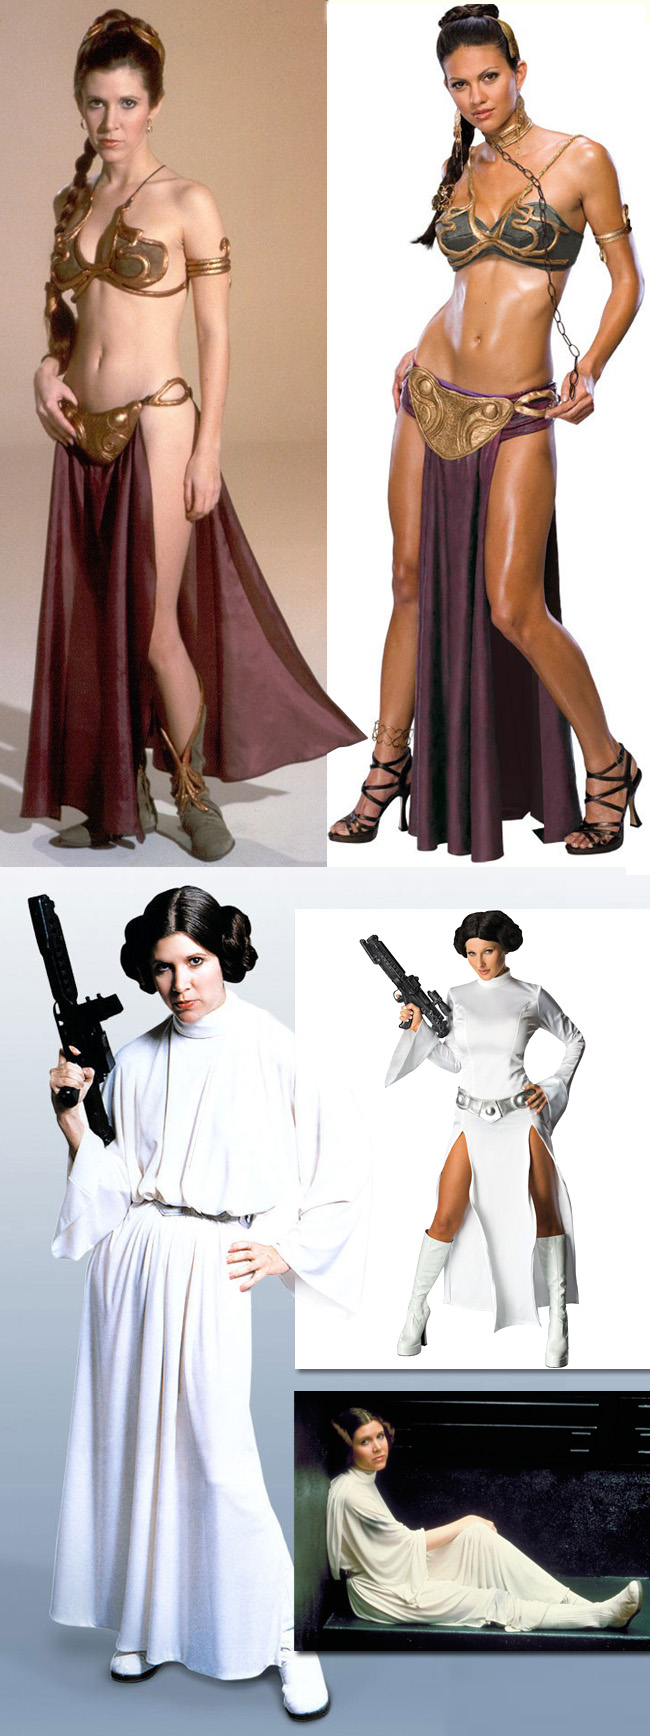 Leia-Princesa-Star-Wars-sexy-girl-pin-up-moda-concept-art-bikini-vestuario